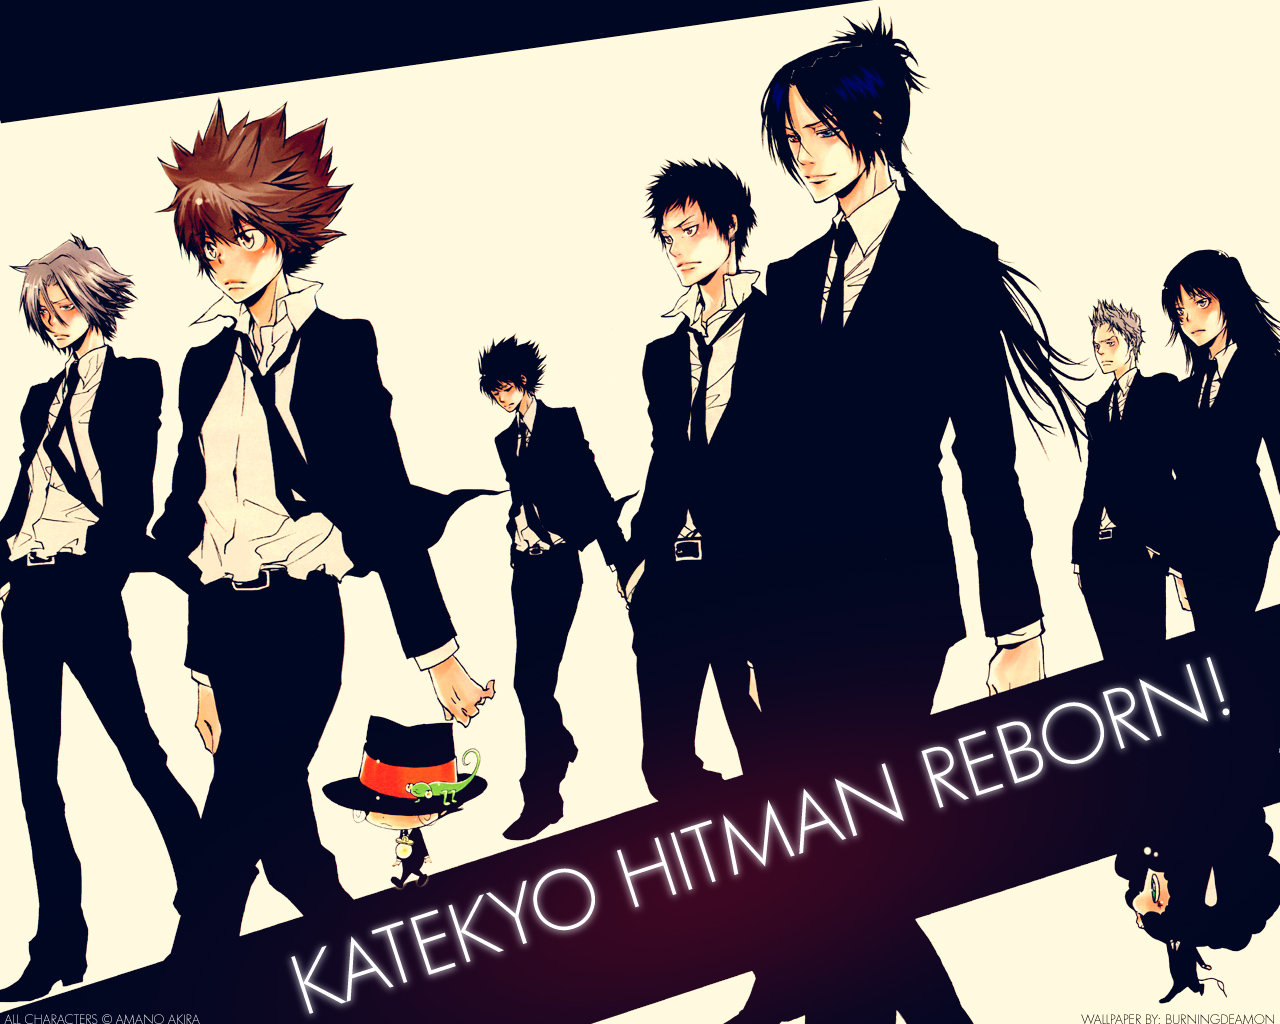 Katekyo Hitman Reborn Wallpapers 1280x1024 Desktop Backgrounds